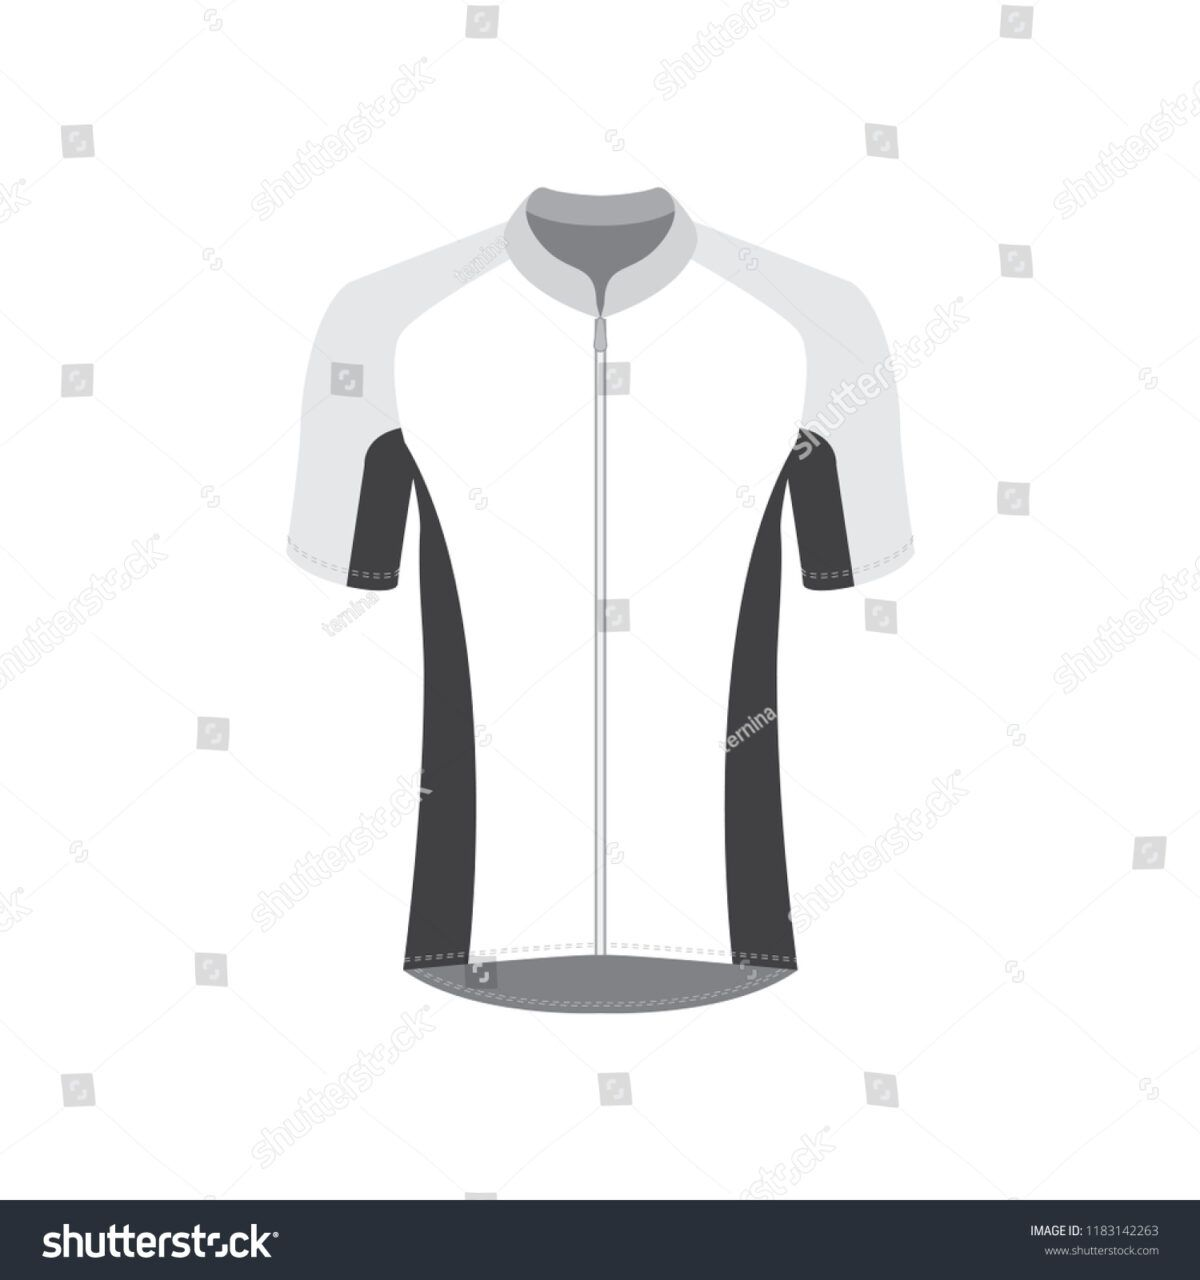 Download Bike Jersey Mockup Images Stock Photos Vectors Shutterstock Pertaining To Blank Cycling Jersey Template Bike Jersey Cycling Jersey Stock Photos